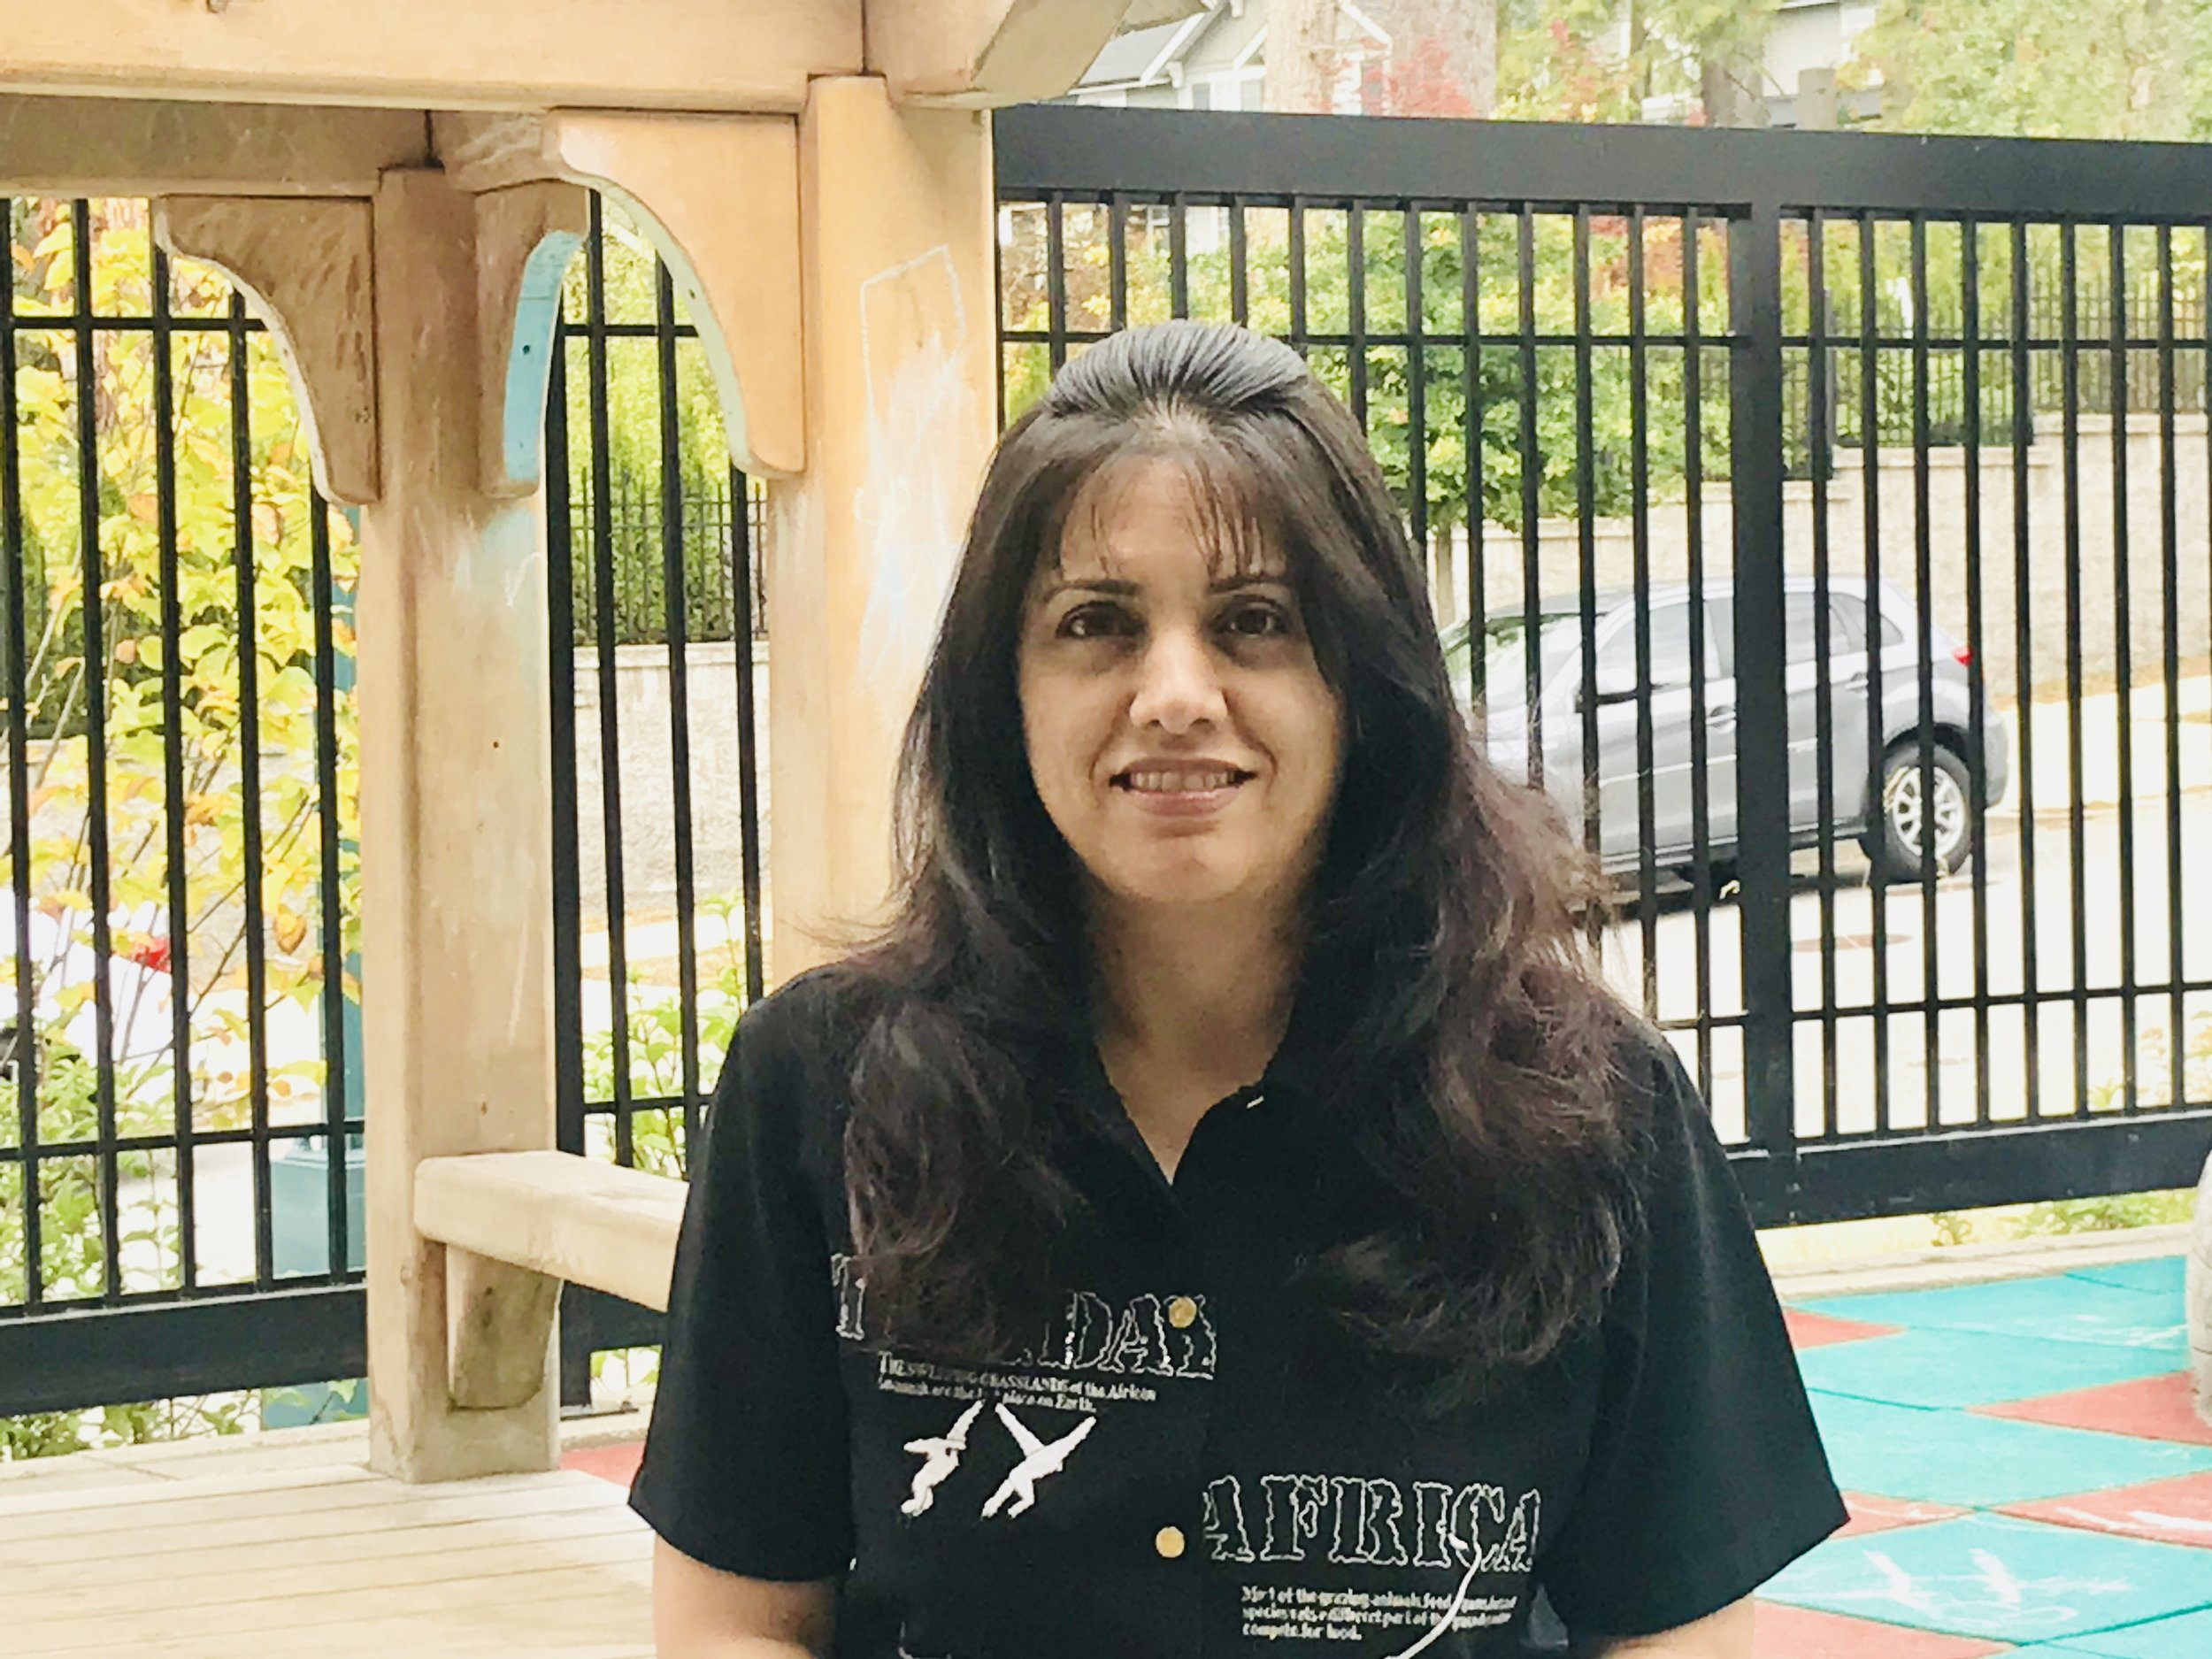 Ms. Roya - I am a true lover of kids. I am a certified Early Childhood Educator teacher with 20+ years of experience. I obtained my certificates from Bow Valley and Vancouver Career Colleges plus my degree and a PTC certificate from overseas. I am also a member of BC Montessori Association of Teachers. I speak English and Farsi. My strengths include the ability of boosting morale and transferring concepts to kids in exceptional attractive ways.